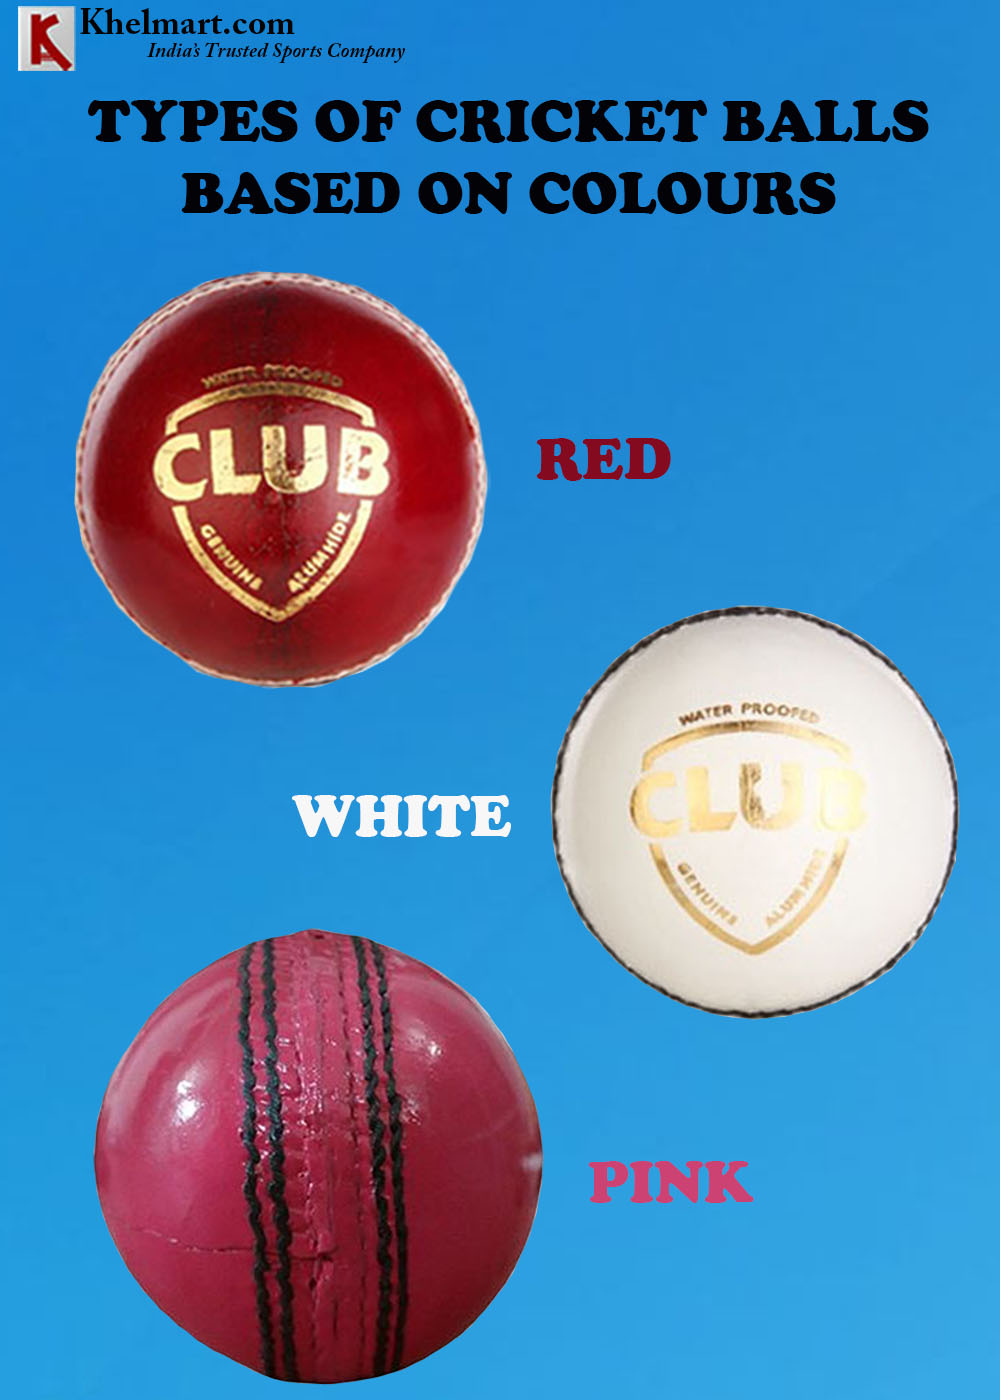 Types of Cricket Balls Based on Colours